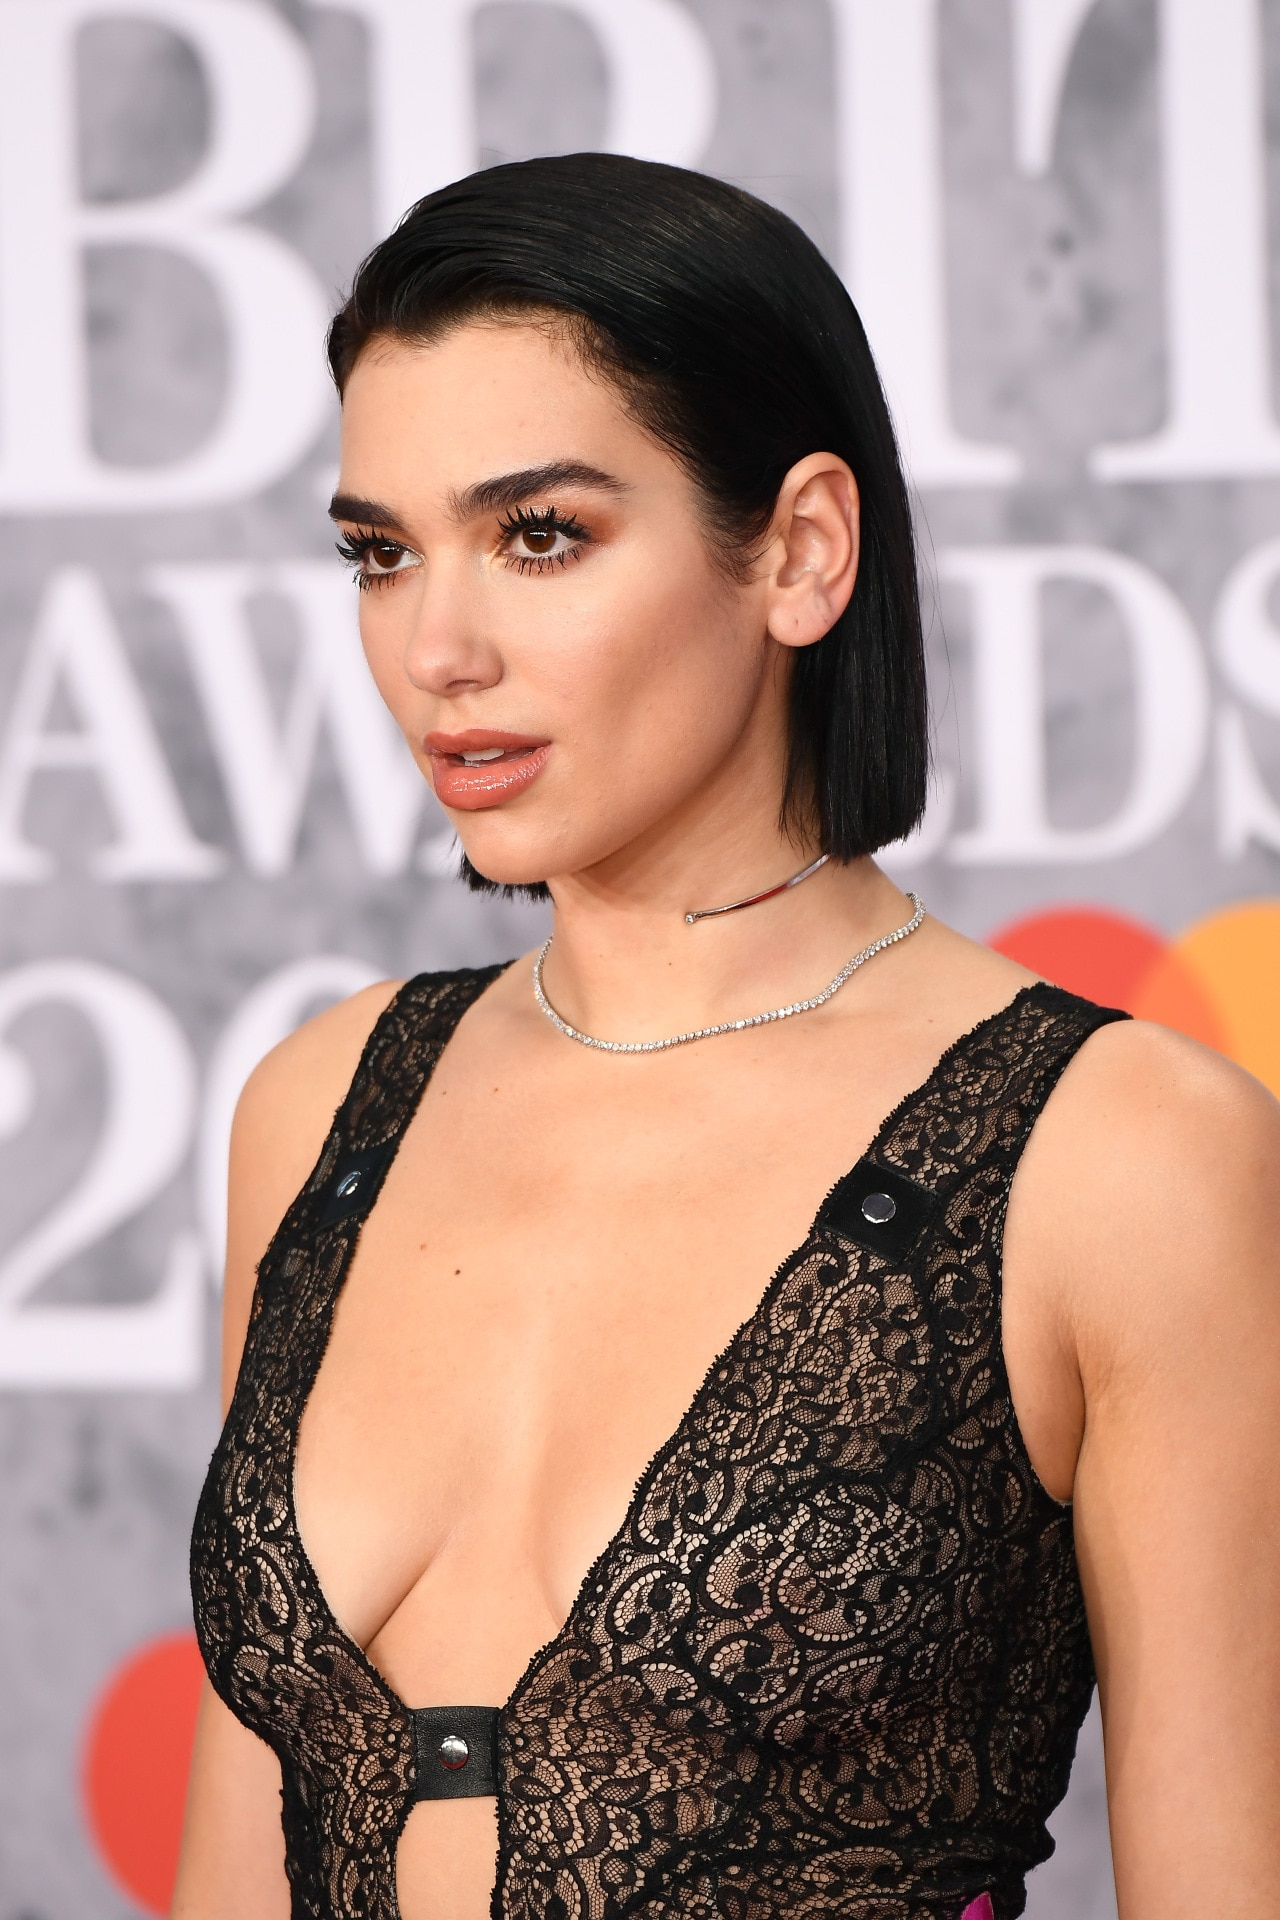 Dua Lipa on fashion, the future and her foray into fragrance